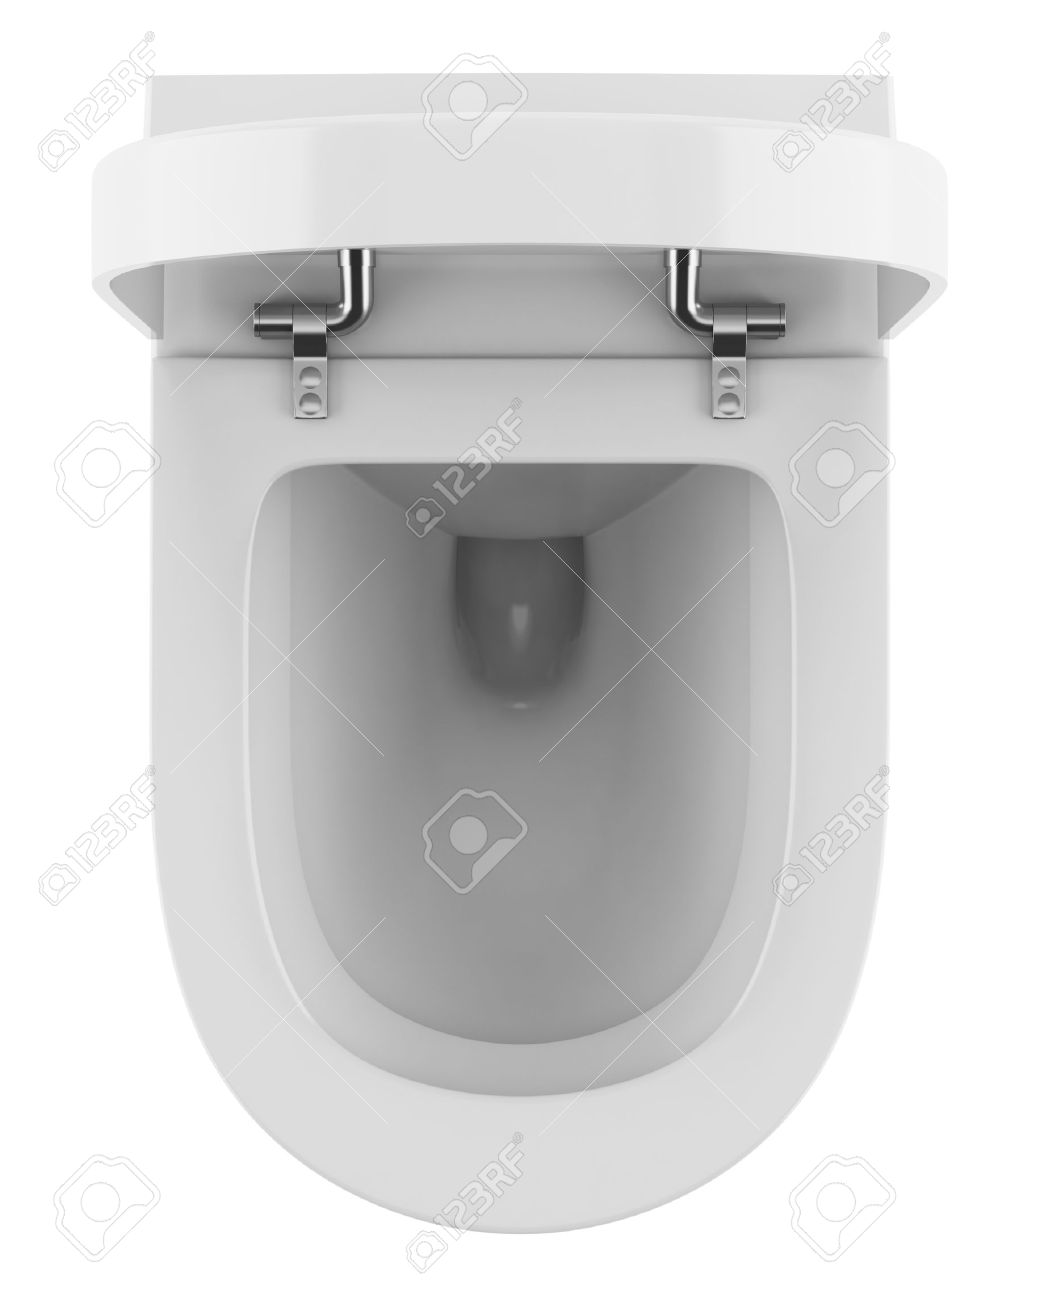 top view of modern toilet bowl isolated on white background Stock Photo    16651444. Top View Of Modern Toilet Bowl Isolated On White Background Stock